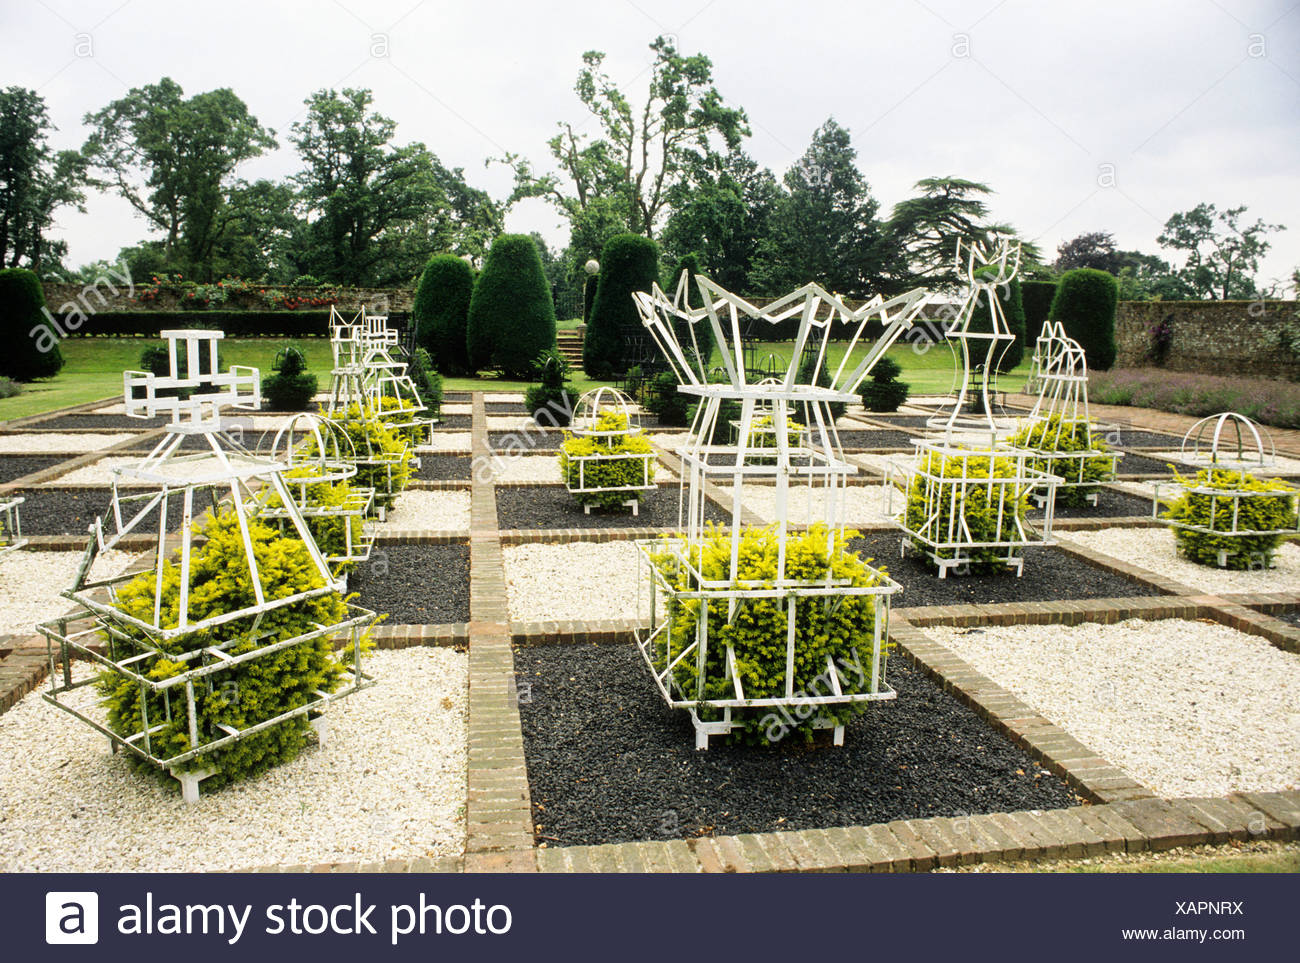 Topiary Training Frames Chess Set Board Brickwall House Sussex England UK  Garden Plants Design Stock Photo: 282012526   Alamy